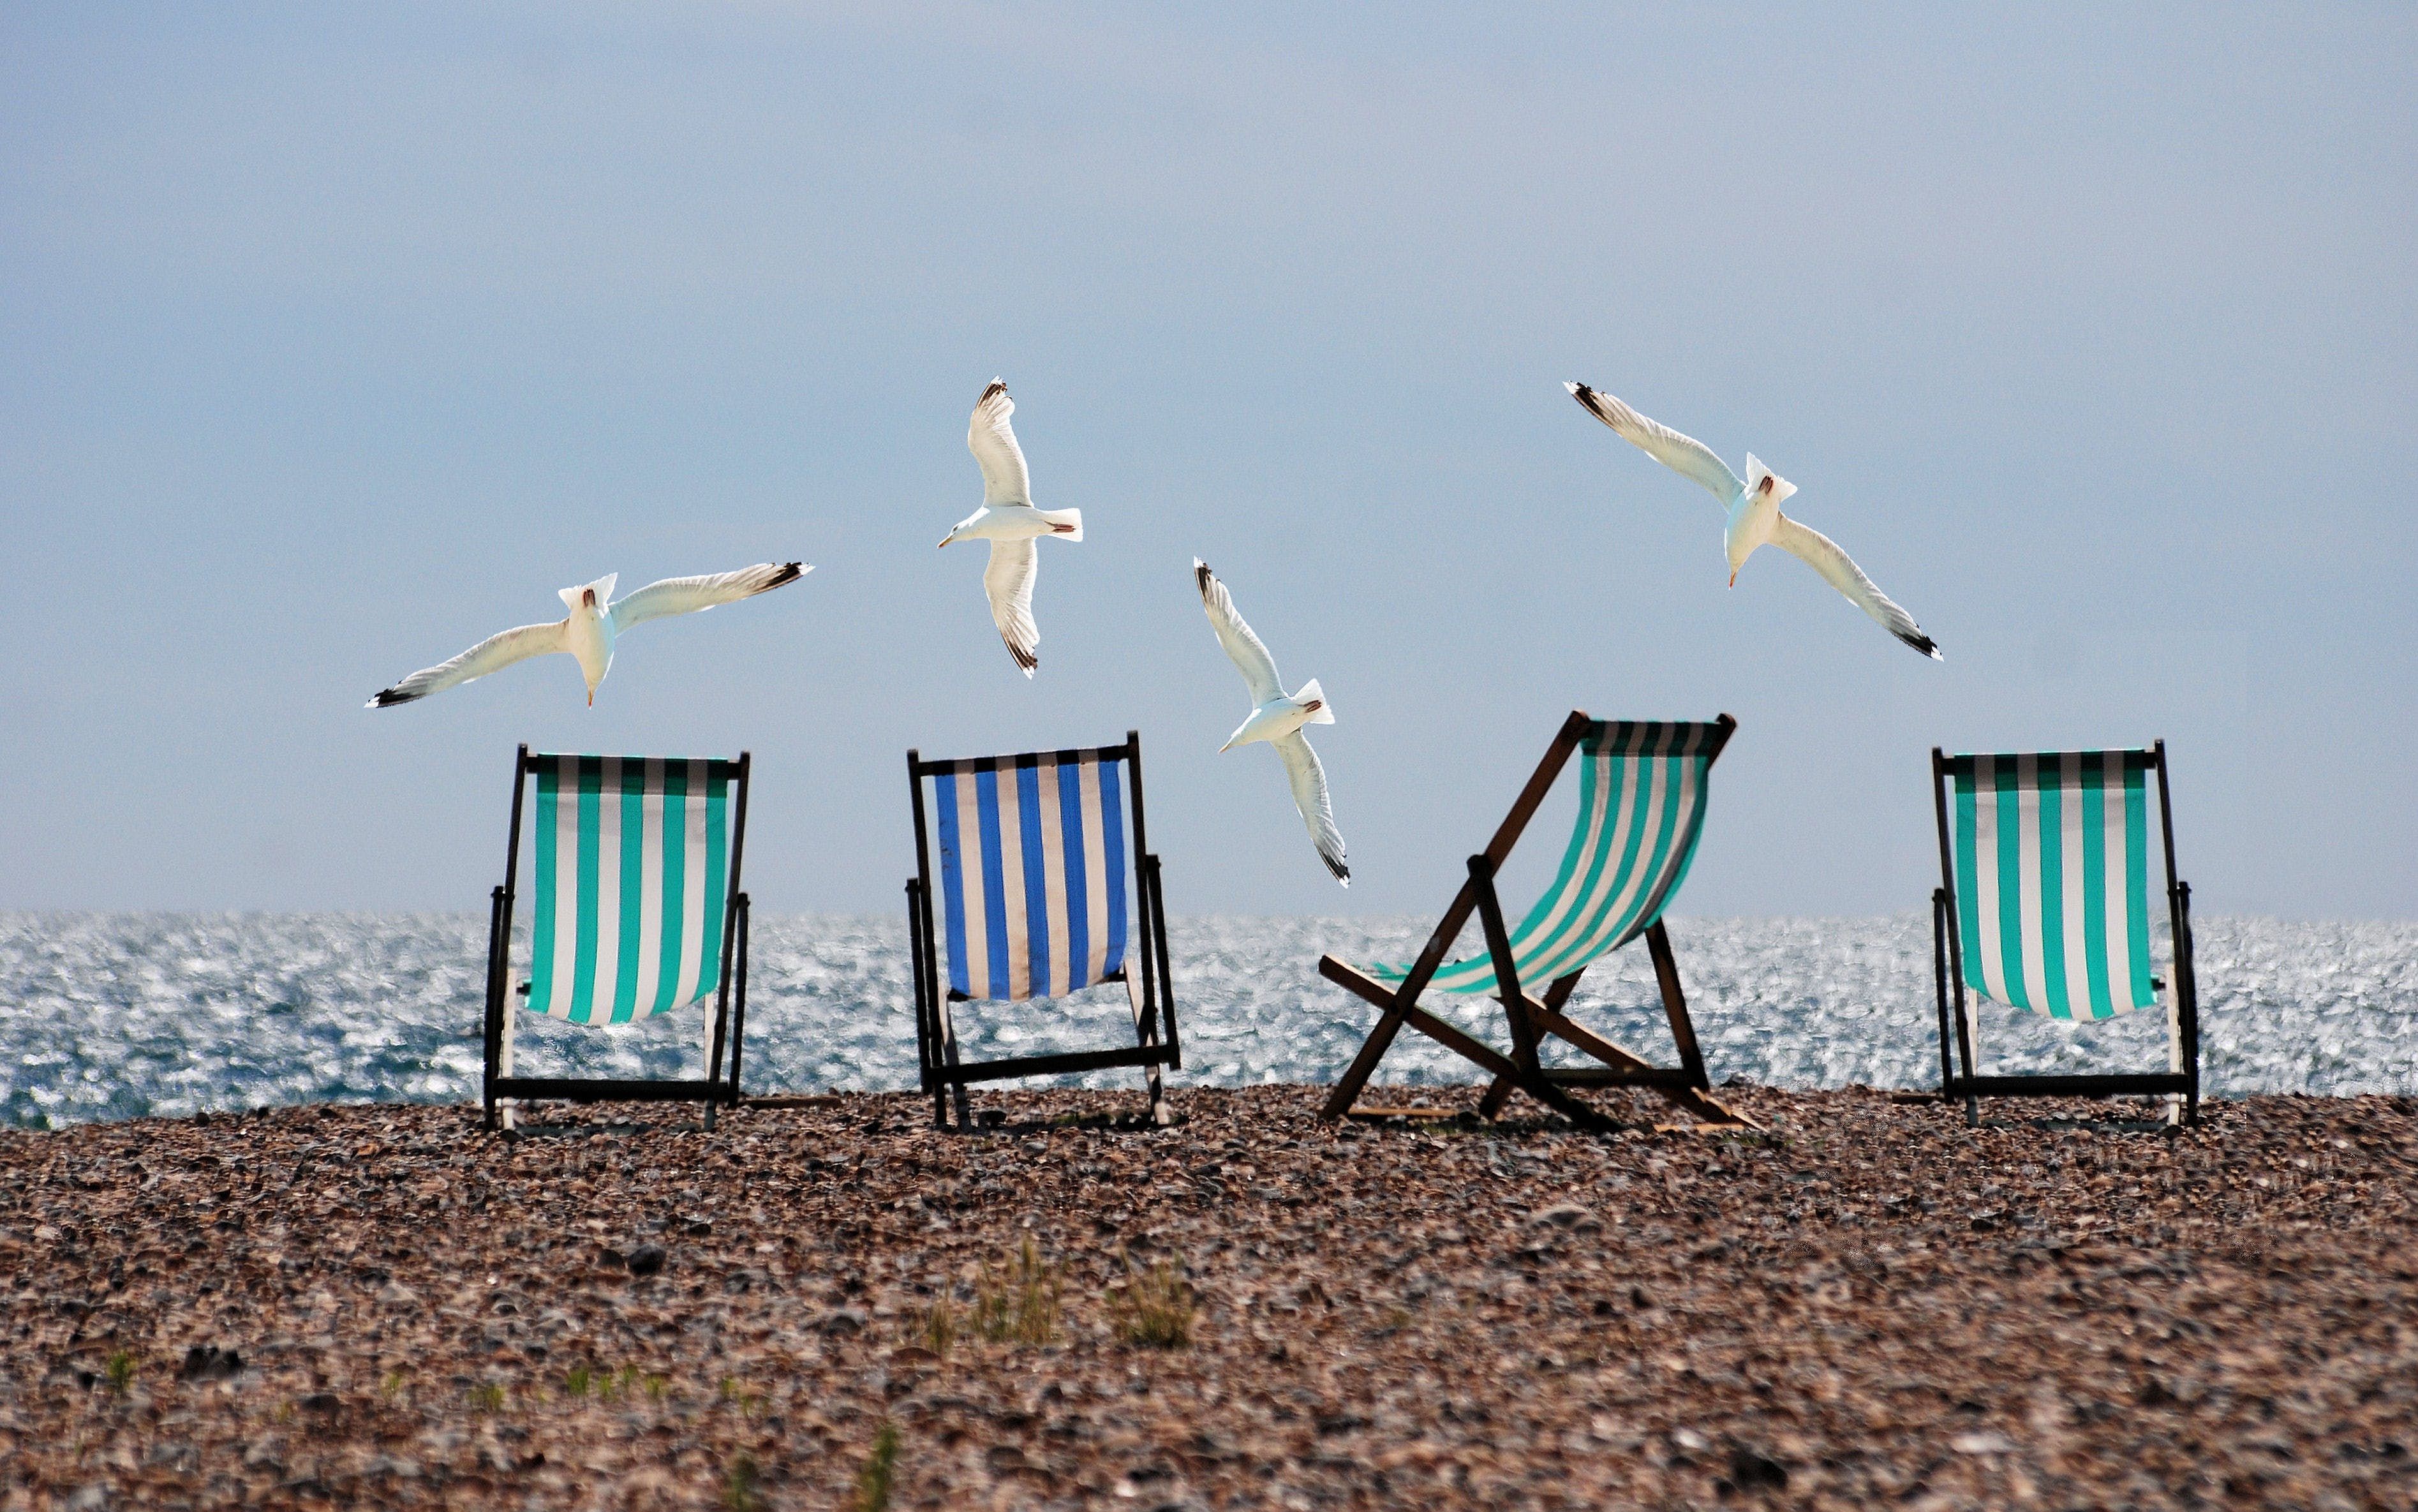 Black White and Blue Lounge Chair on and White Bird